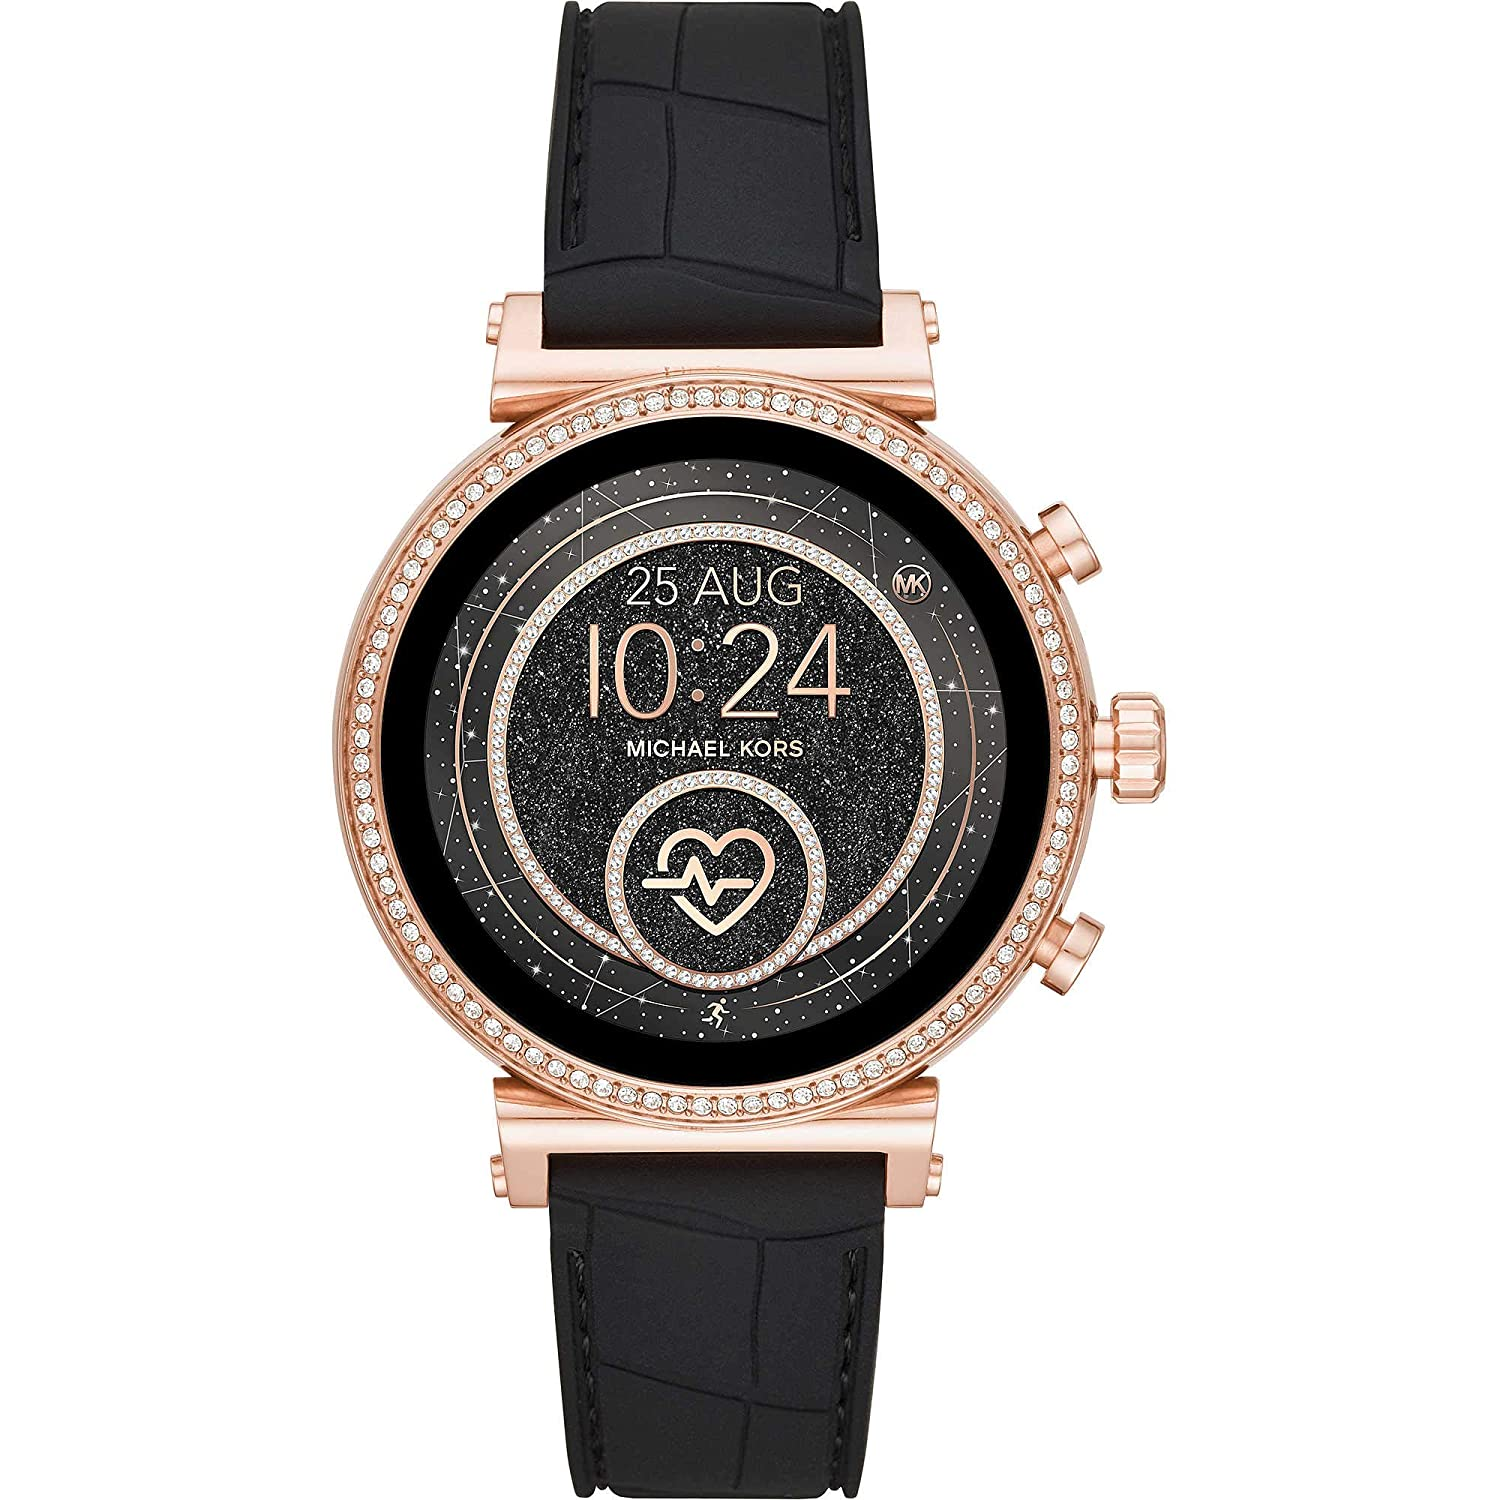 Michael Kors Access Sofie Montre au Poignet Connectée Digital avec Bracelet en Cuir MKT5069: Amazon.fr: High-tech